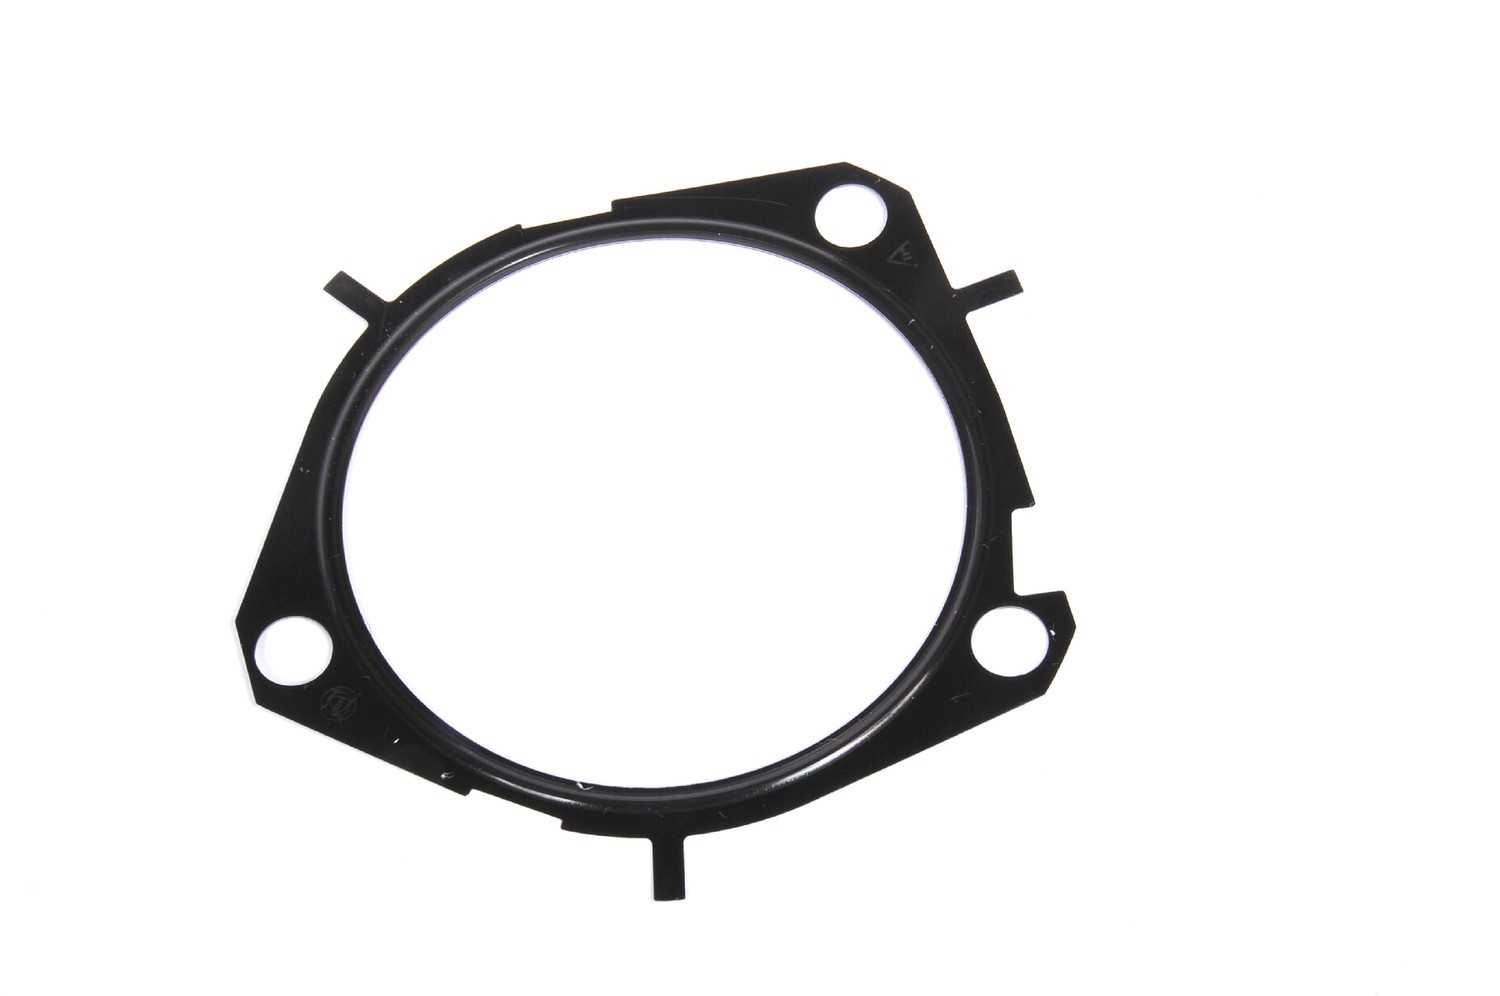 ACDELCO GM ORIGINAL EQUIPMENT - Engine Water Pump Housing Gasket - DCB 251-757